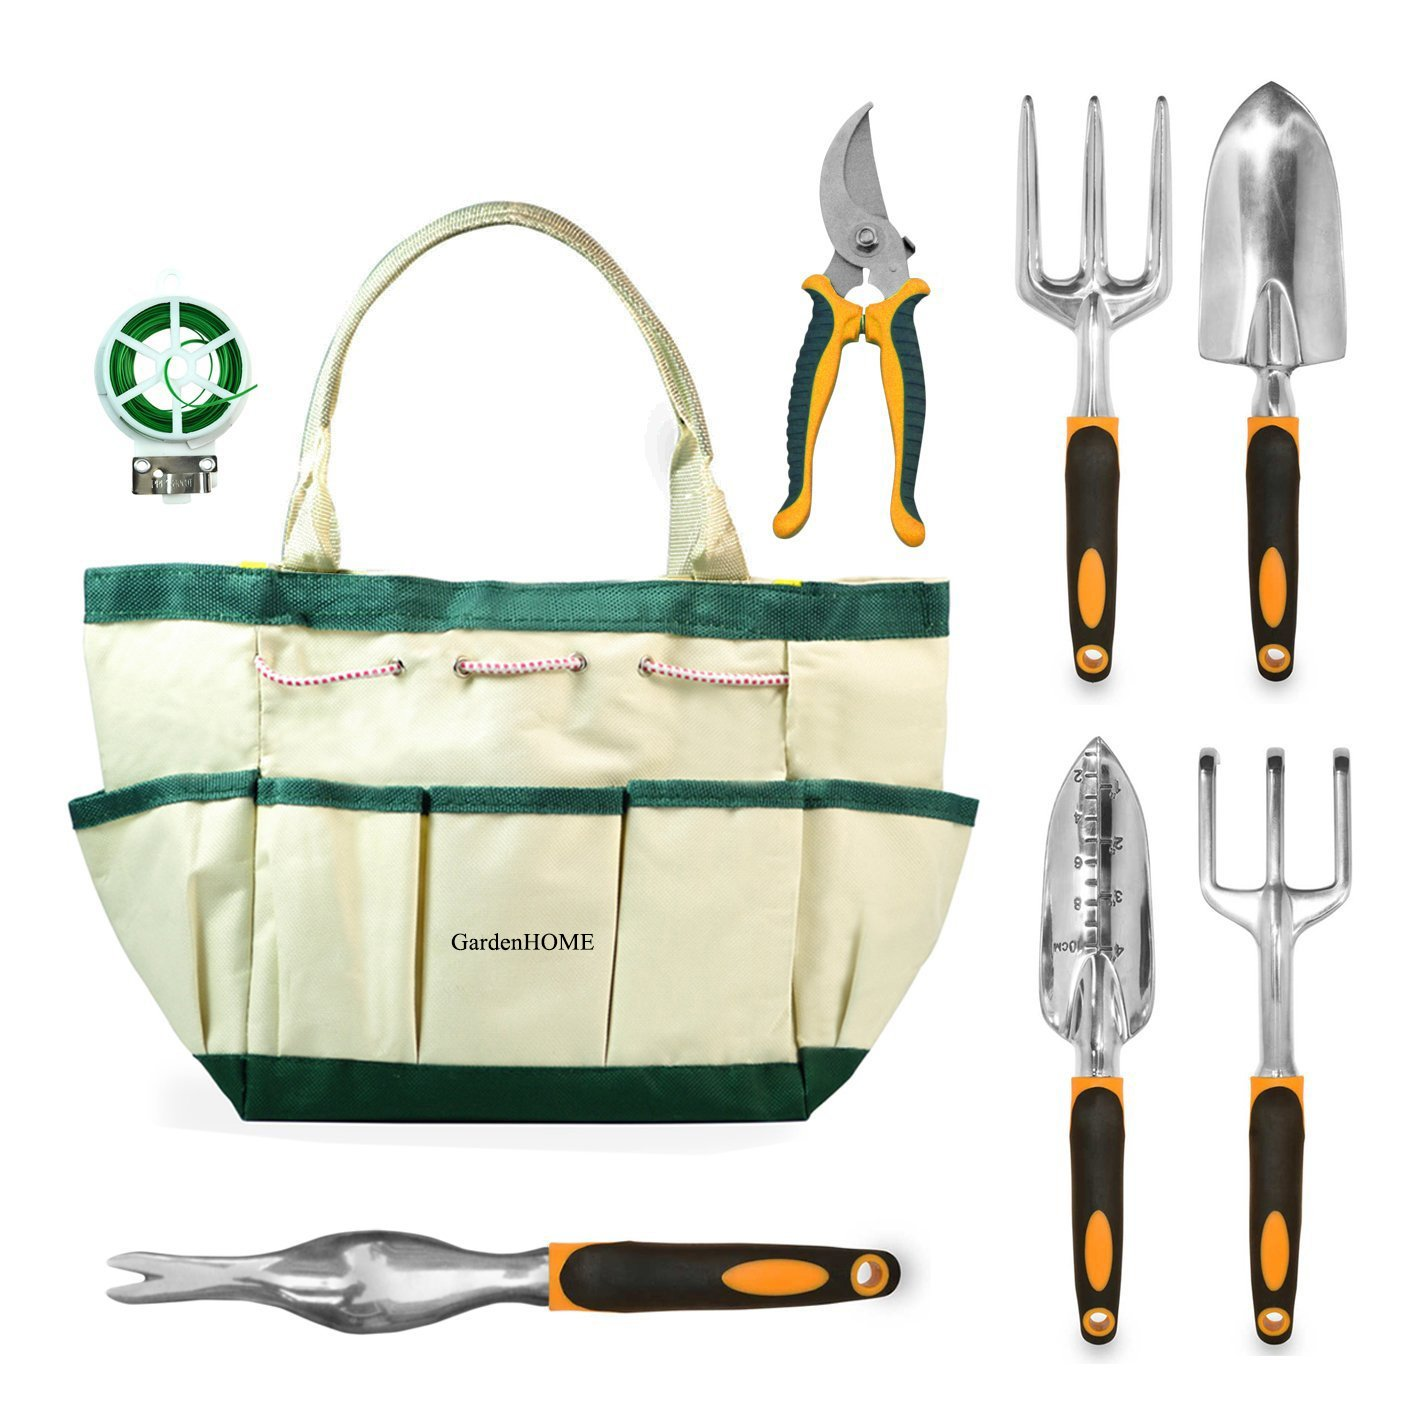 GardenHOME 8 Piece Garden Tool Set - 5 Heavy Duty Cast-Aluminium Tools with Ergonomic Handles, Handy Garden Storage Bag, a Pruner and a Roll of Plant Twist Ties